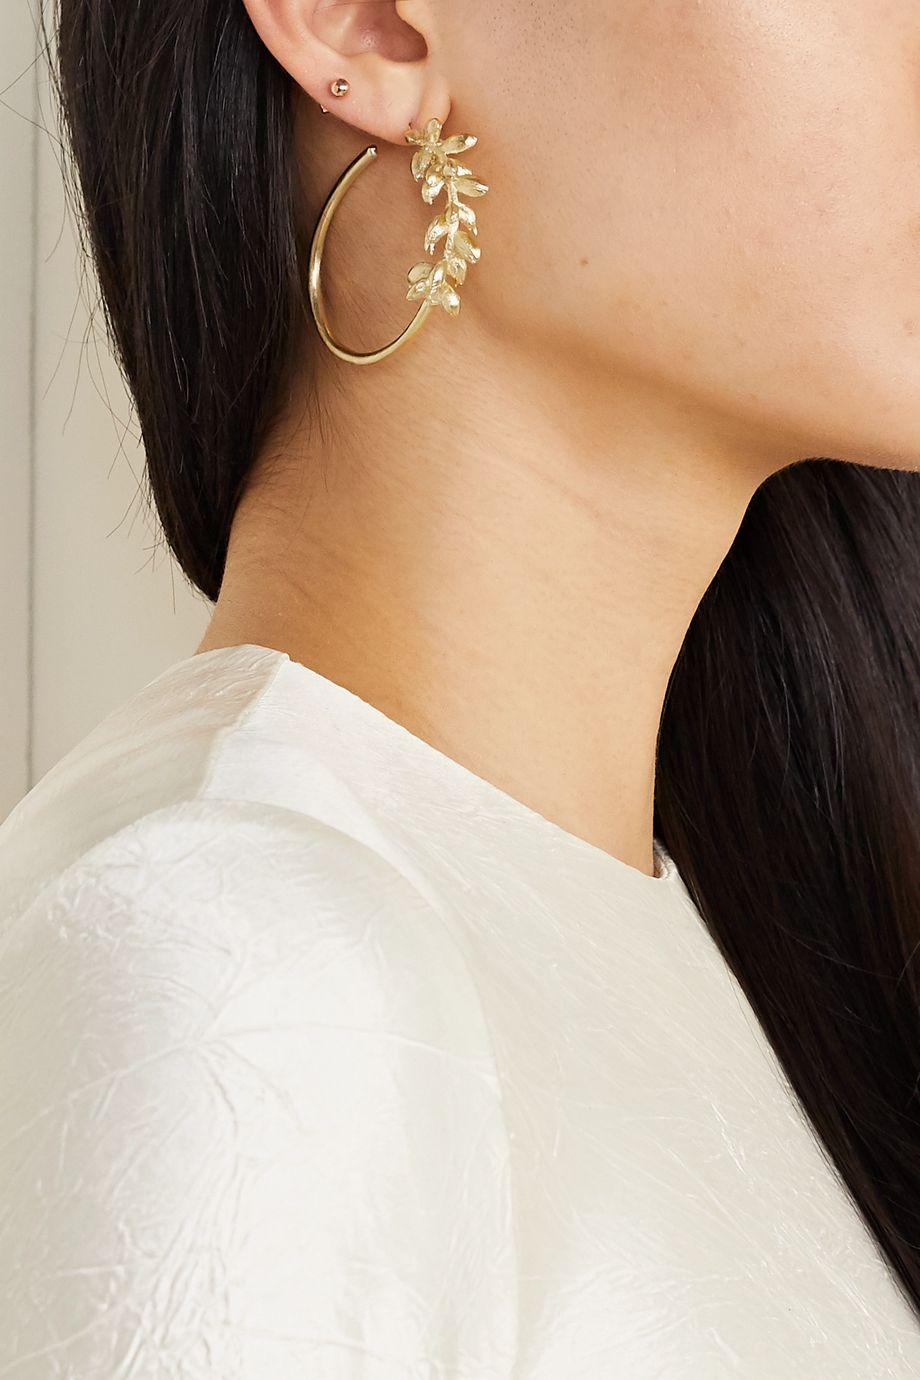 1064 Studio Deep in Grassland gold-plated earrings and ear cuff